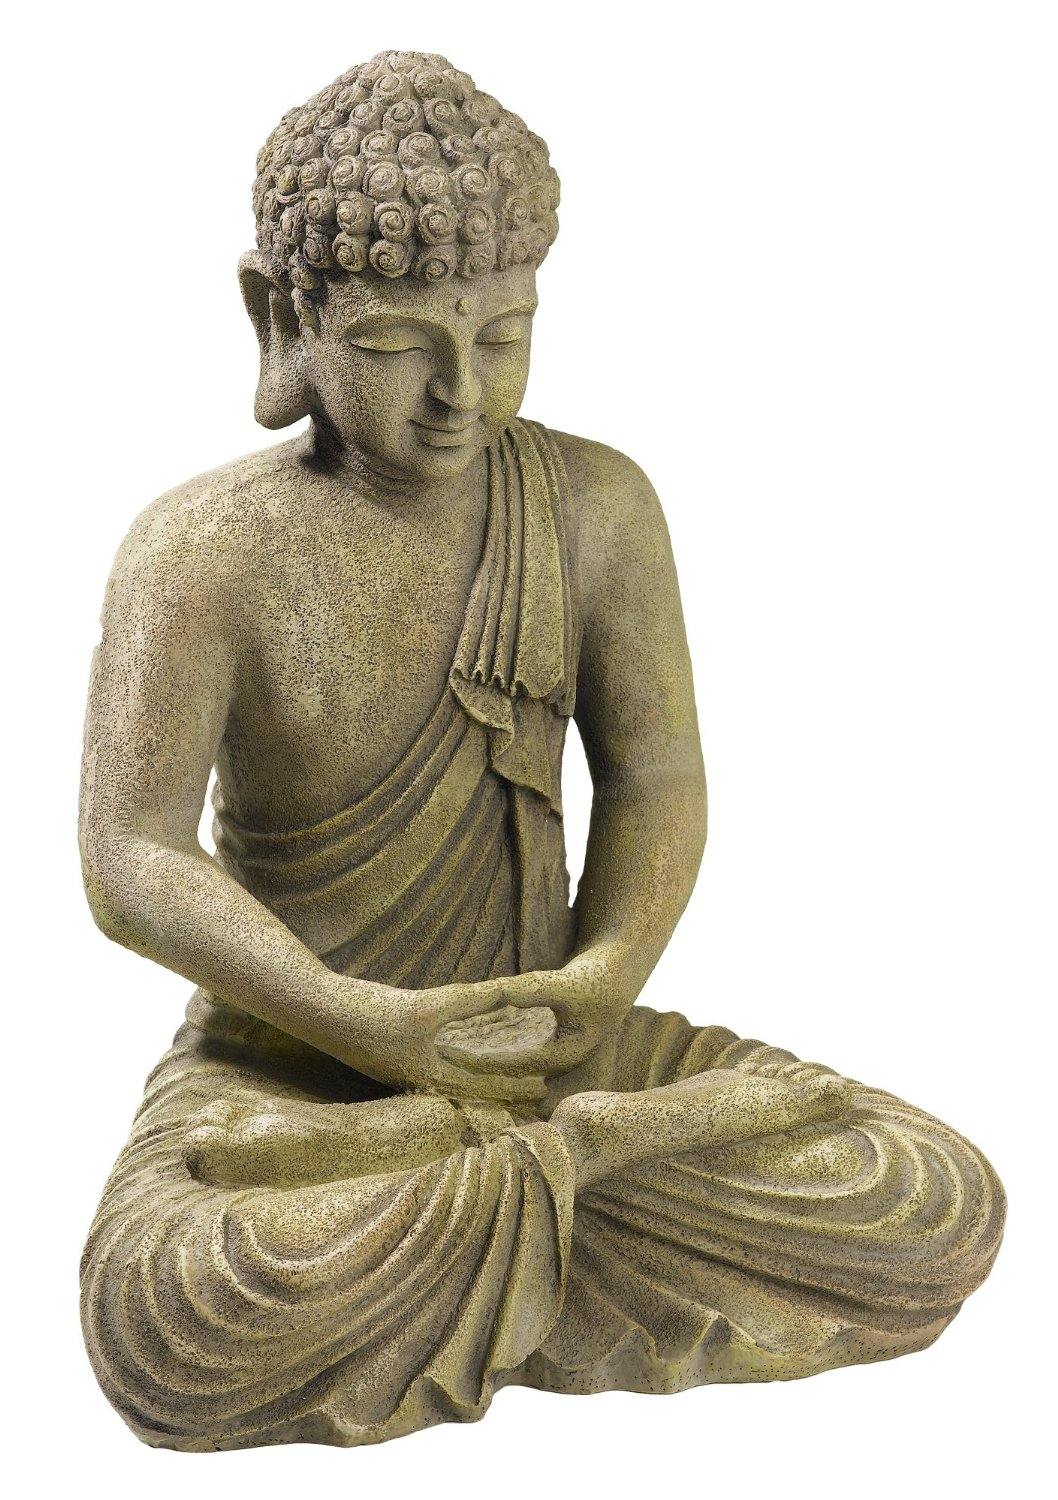 Meditating Buddha Statue for Home | Garden Buddha Statues